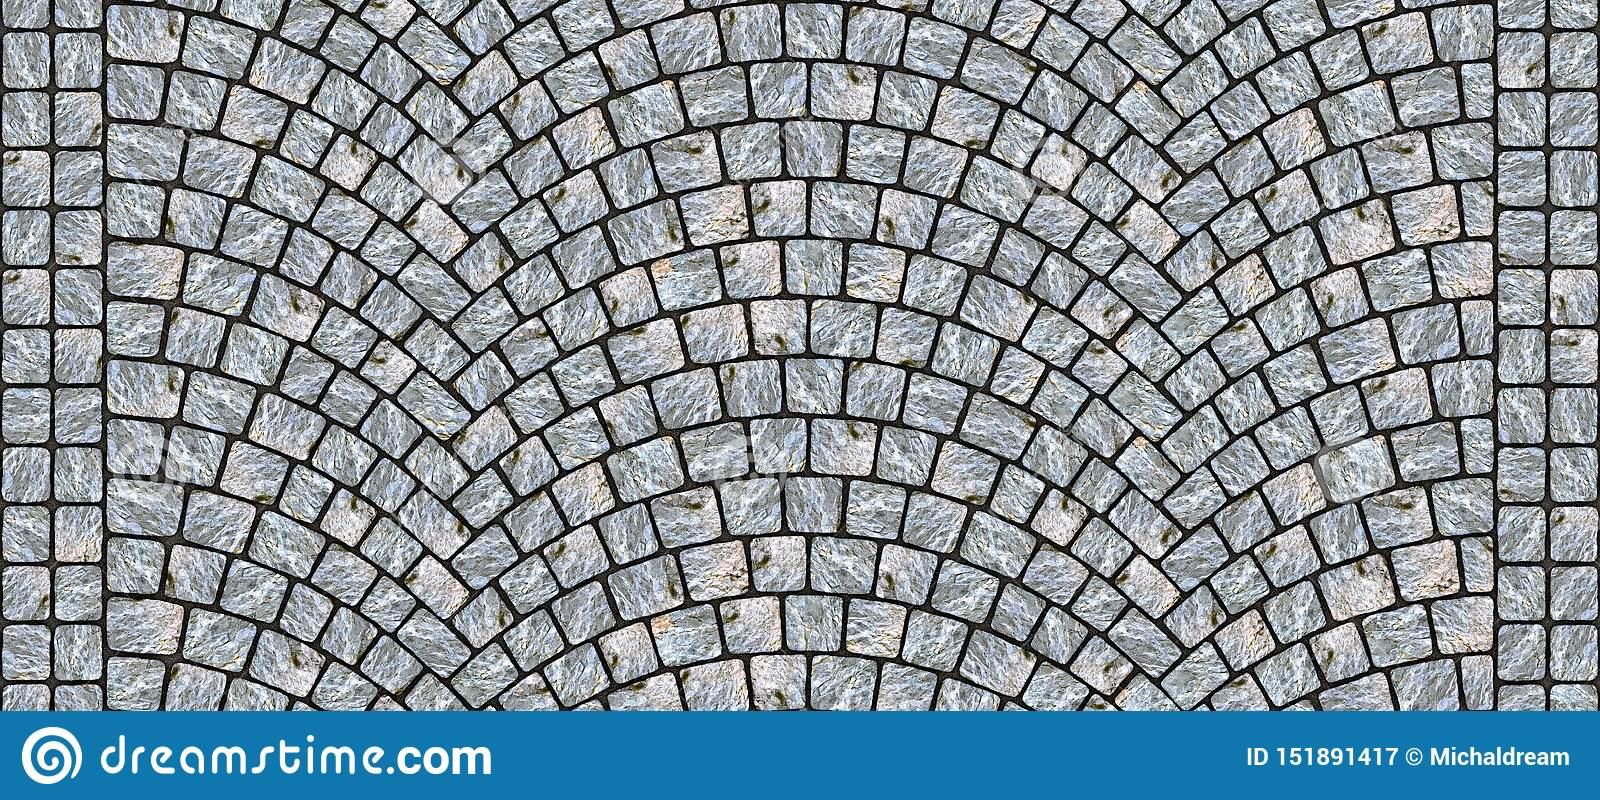 Road curved cobblestone texture 118